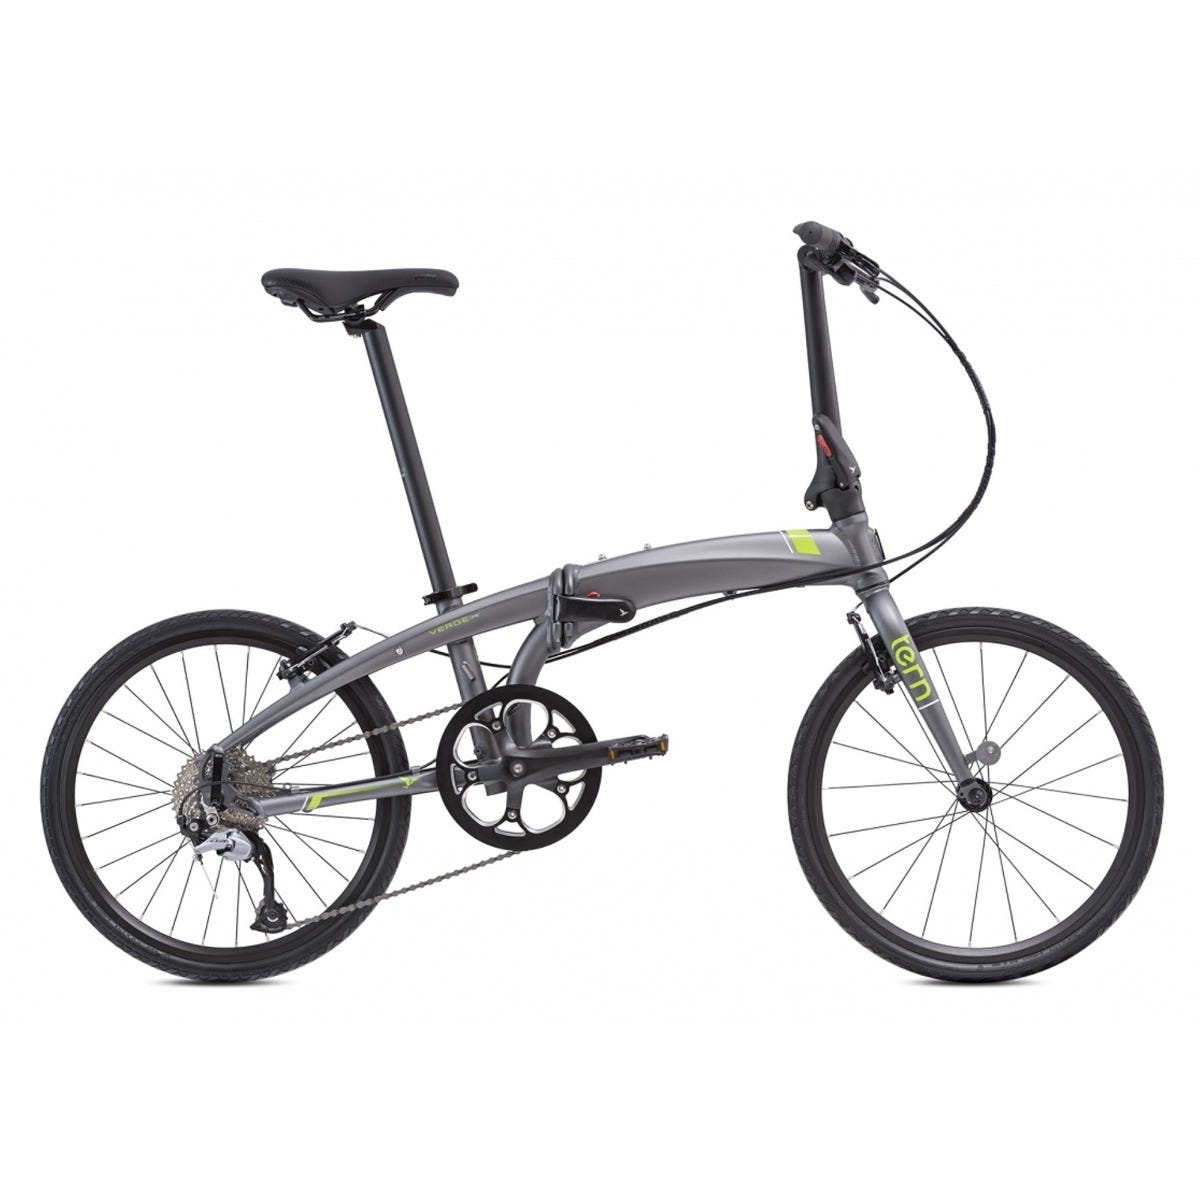 "Tern Verge D9 20"" 9 speed 2020 Folding Bike Gunmetal"